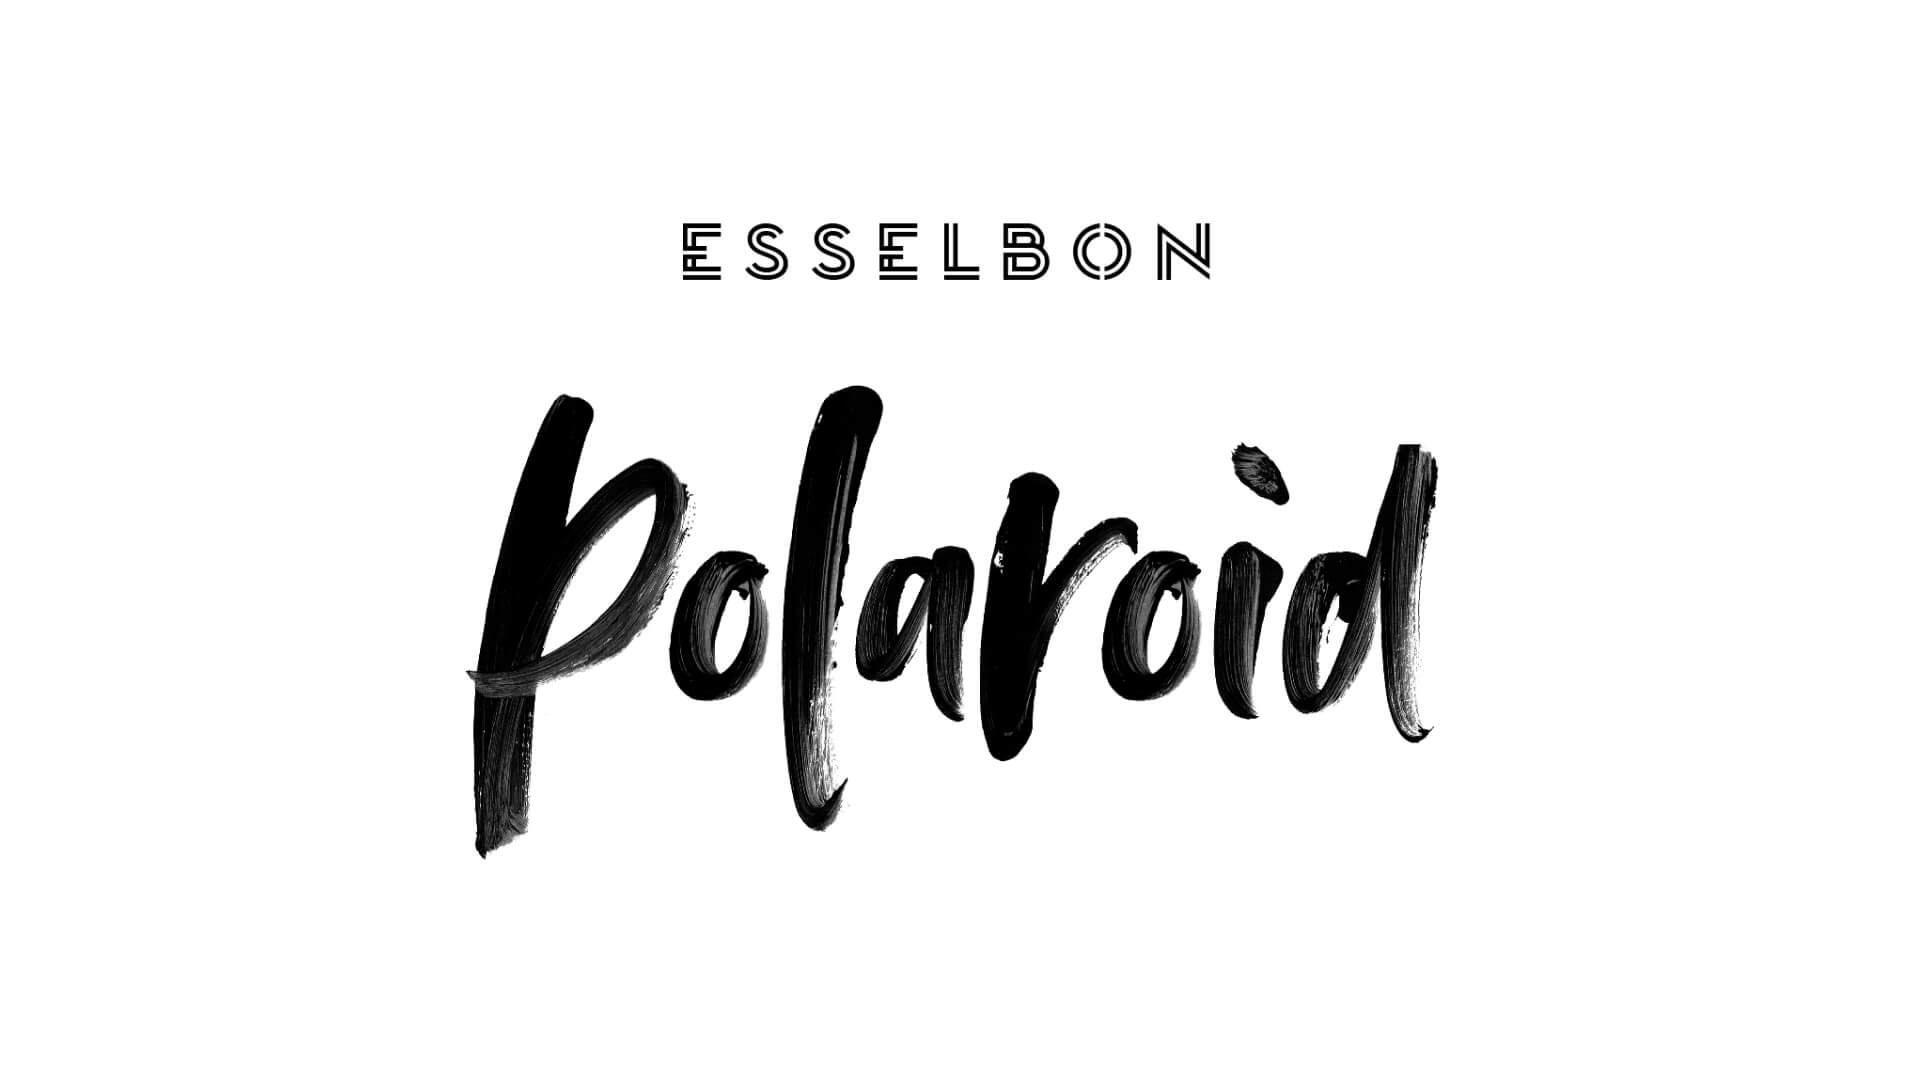 Esselbon - Polaroid